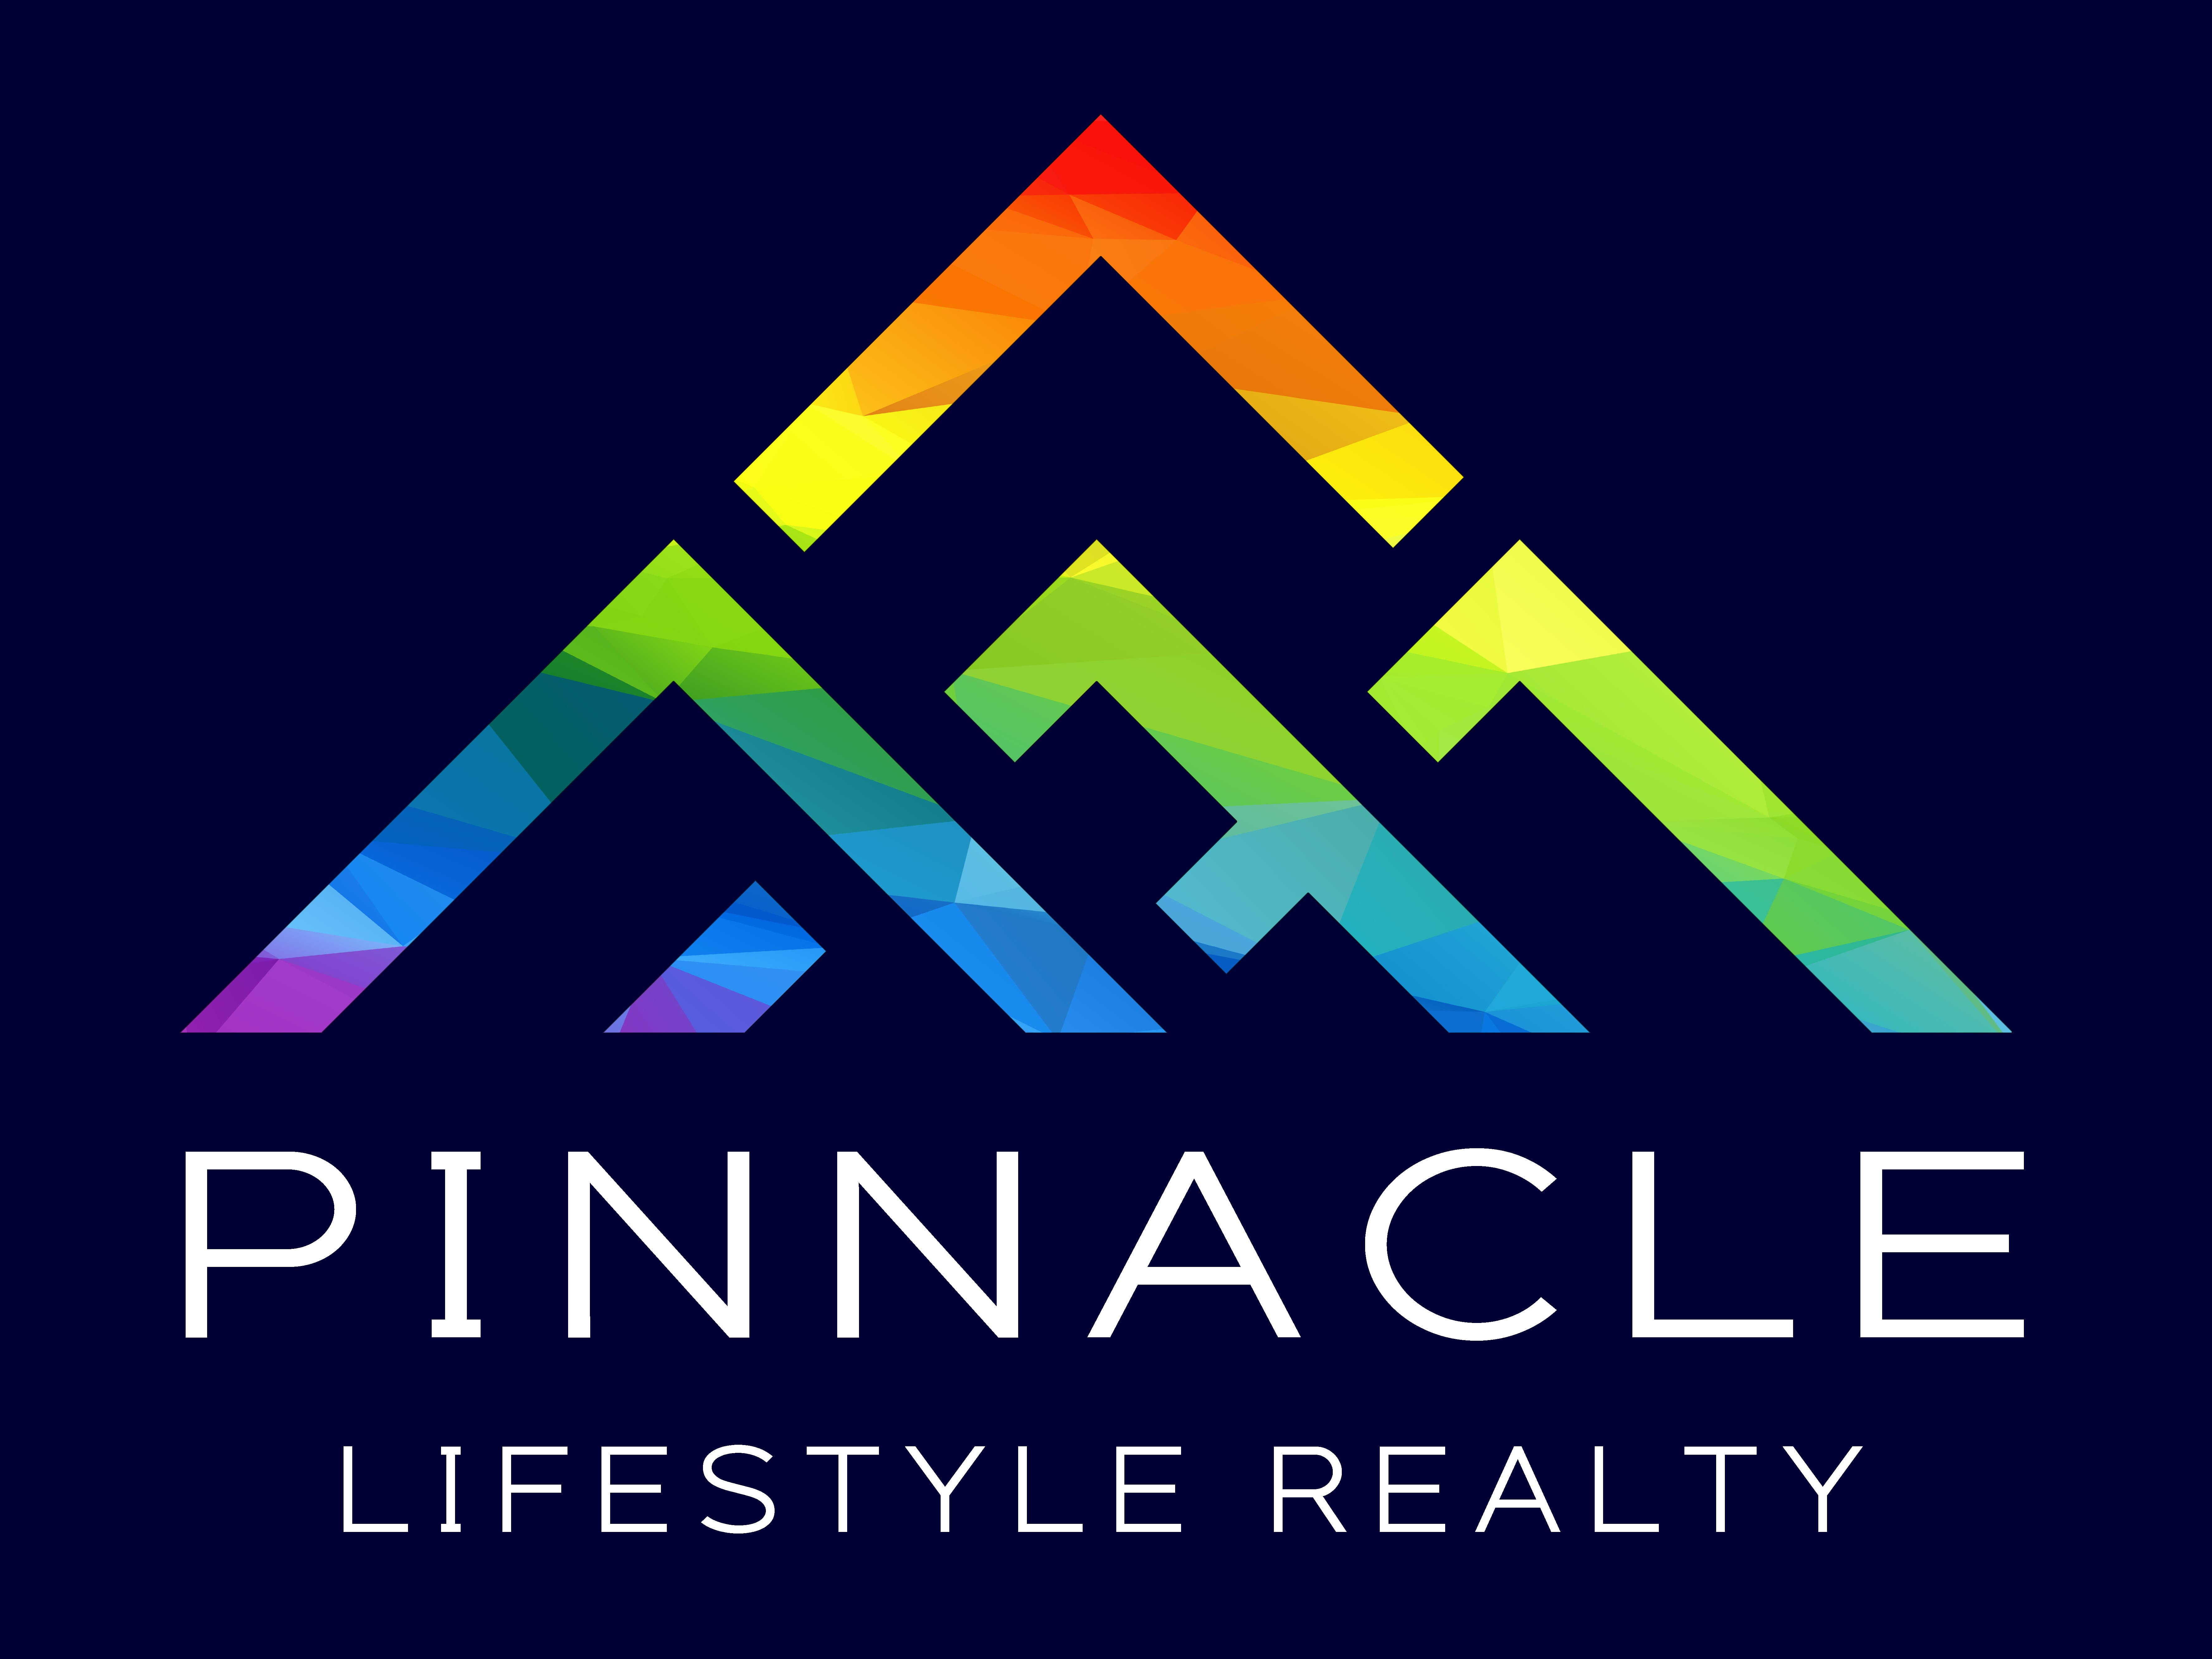 Pinnacle Lifestyle Realty logo